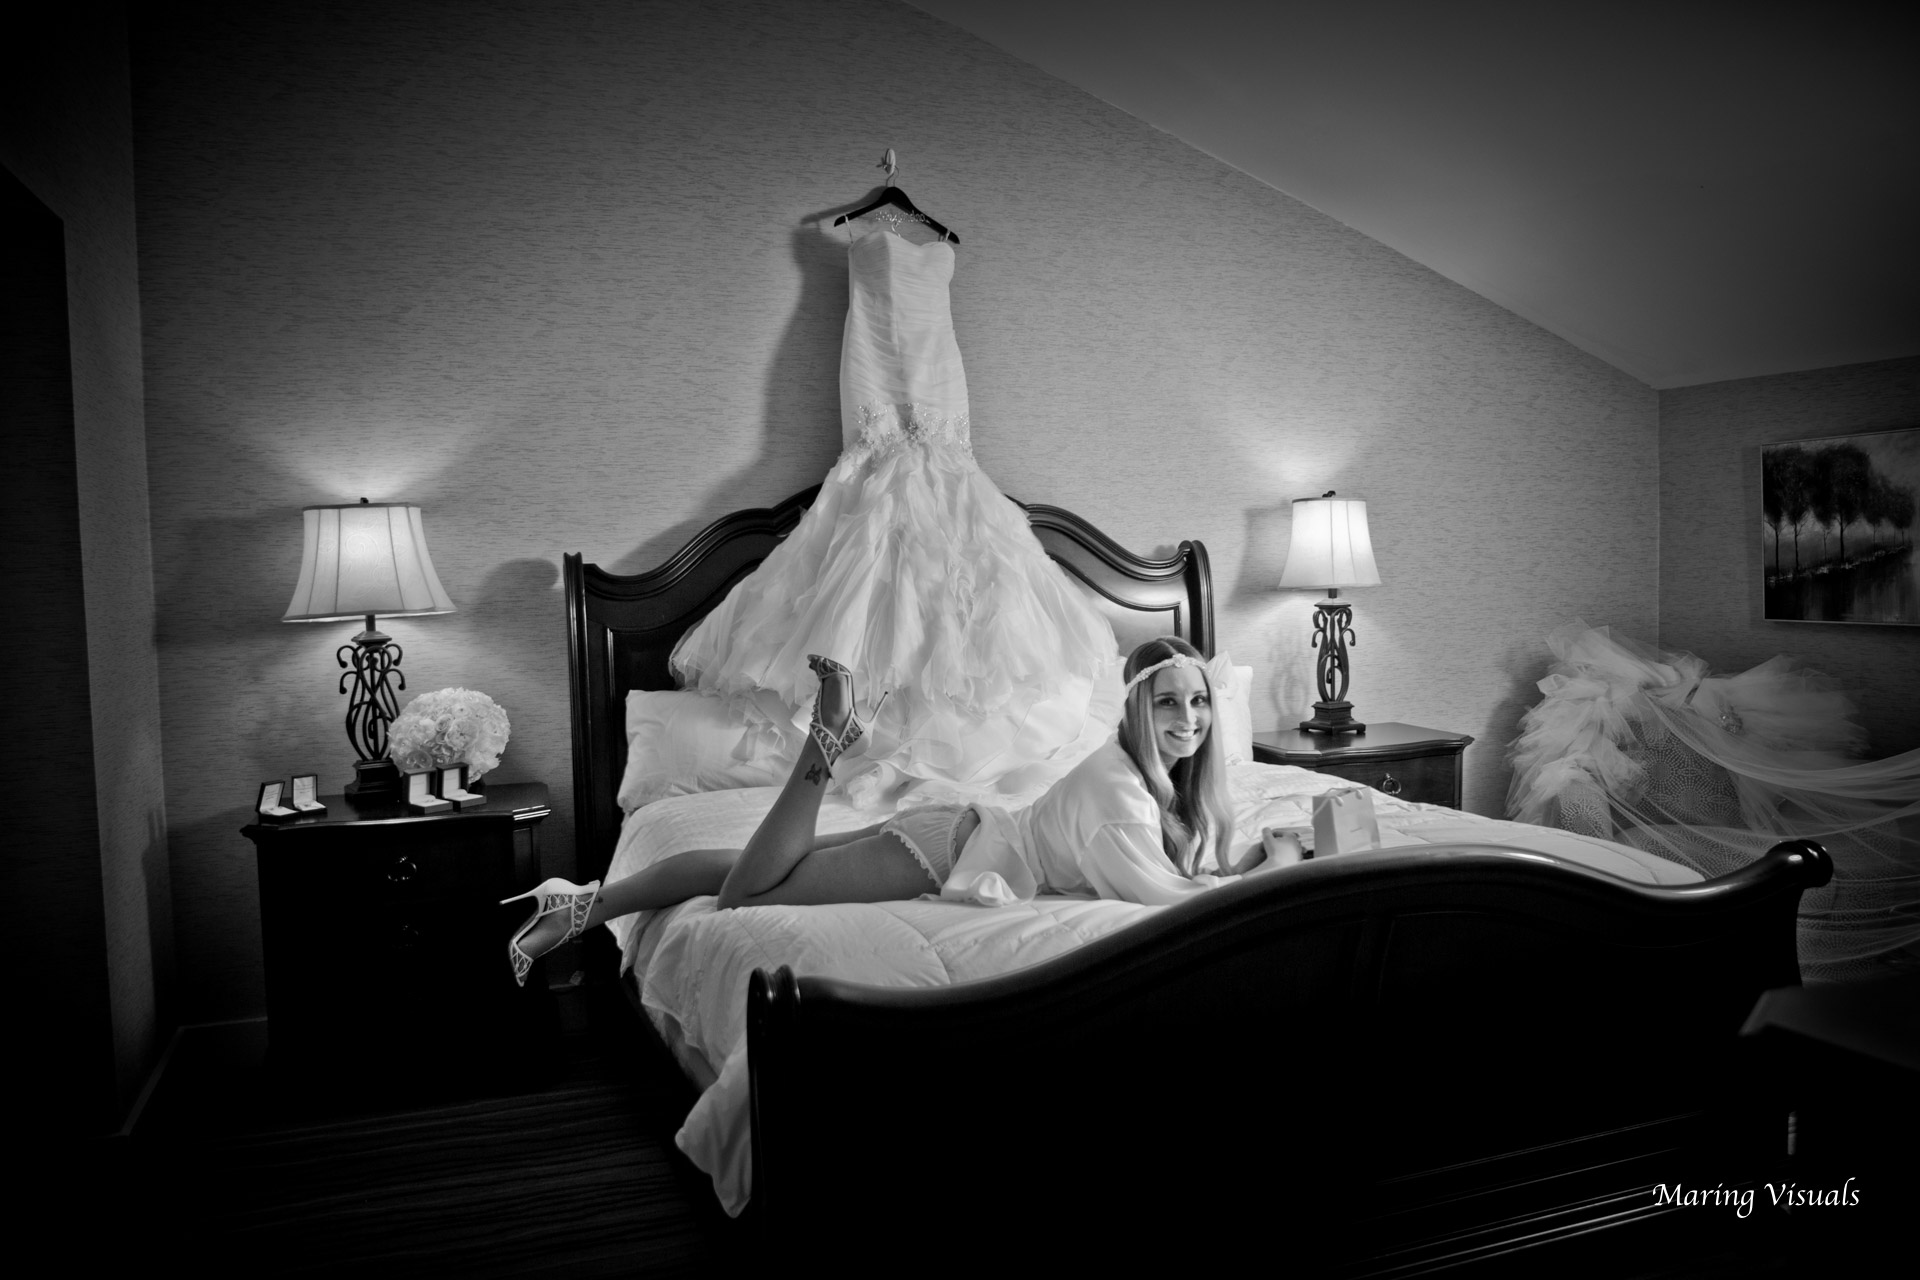 A touch of Boudoir